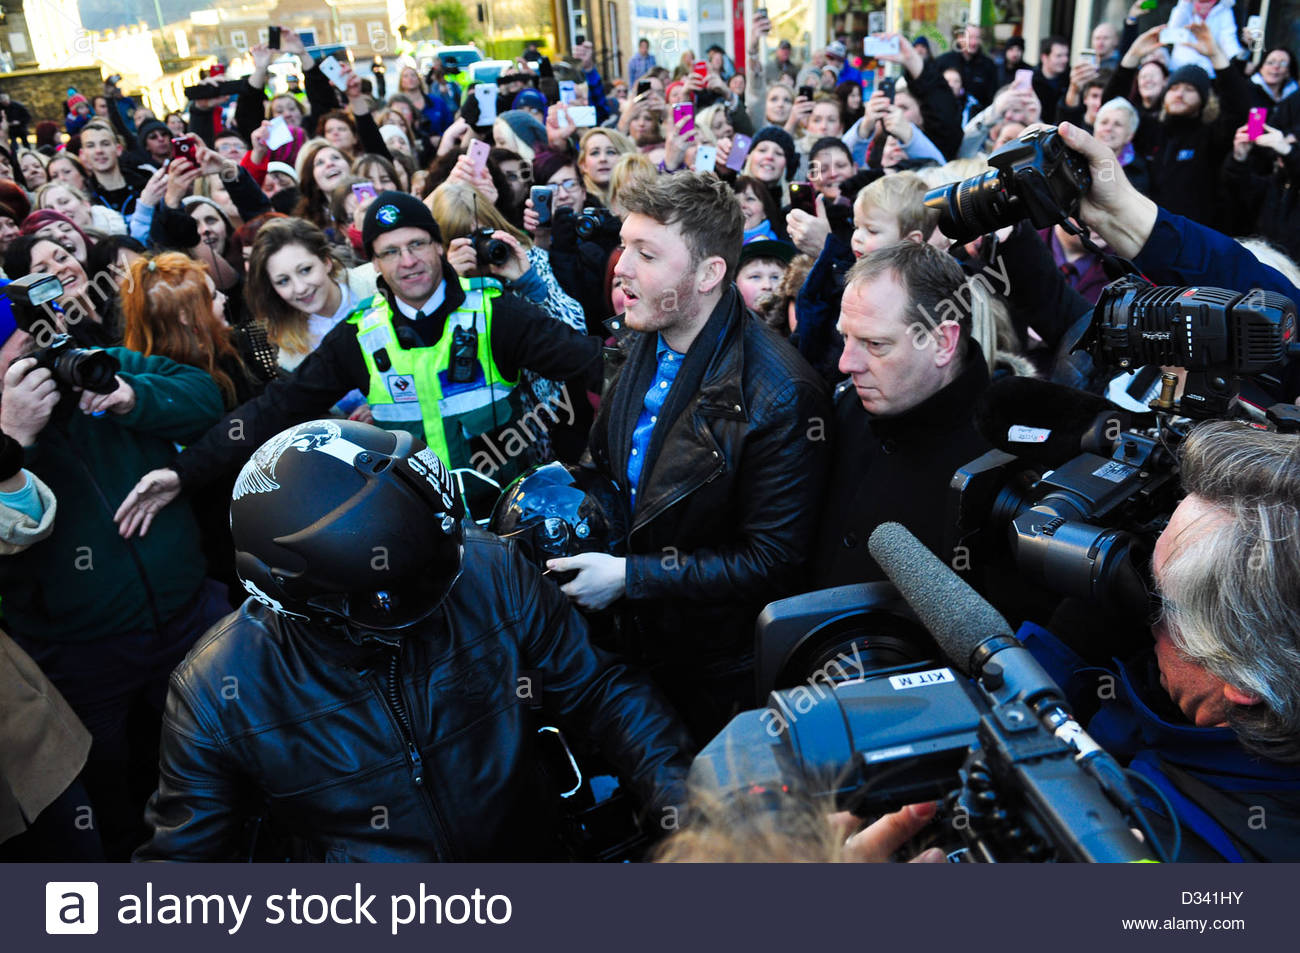 Nicole scherzinger and james arthur stock photos nicole james arthur arrived in saltburn to be meet by hundreds of cheering fans who were waiting m4hsunfo